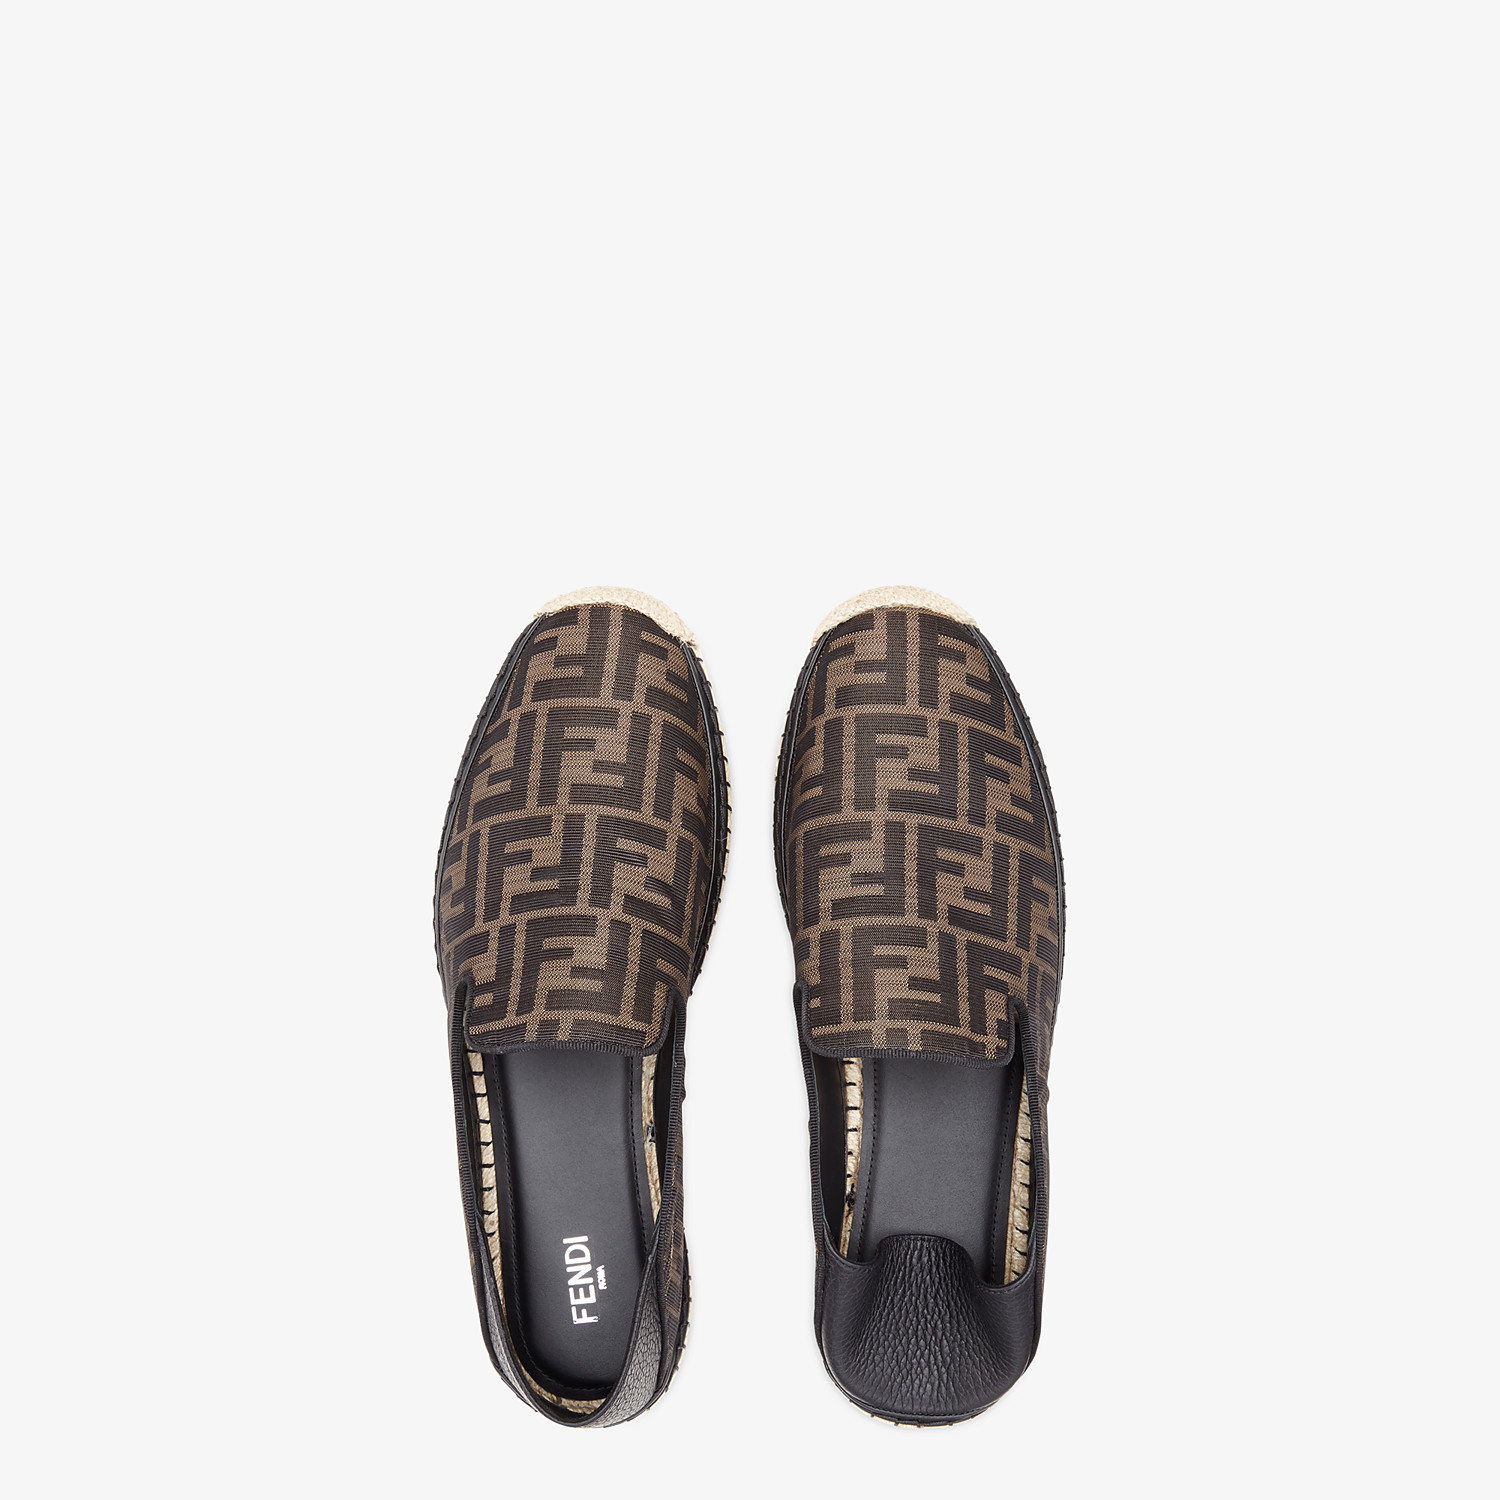 FENDI ESPADRILLES - Brown fabric espadrilles - view 4 detail